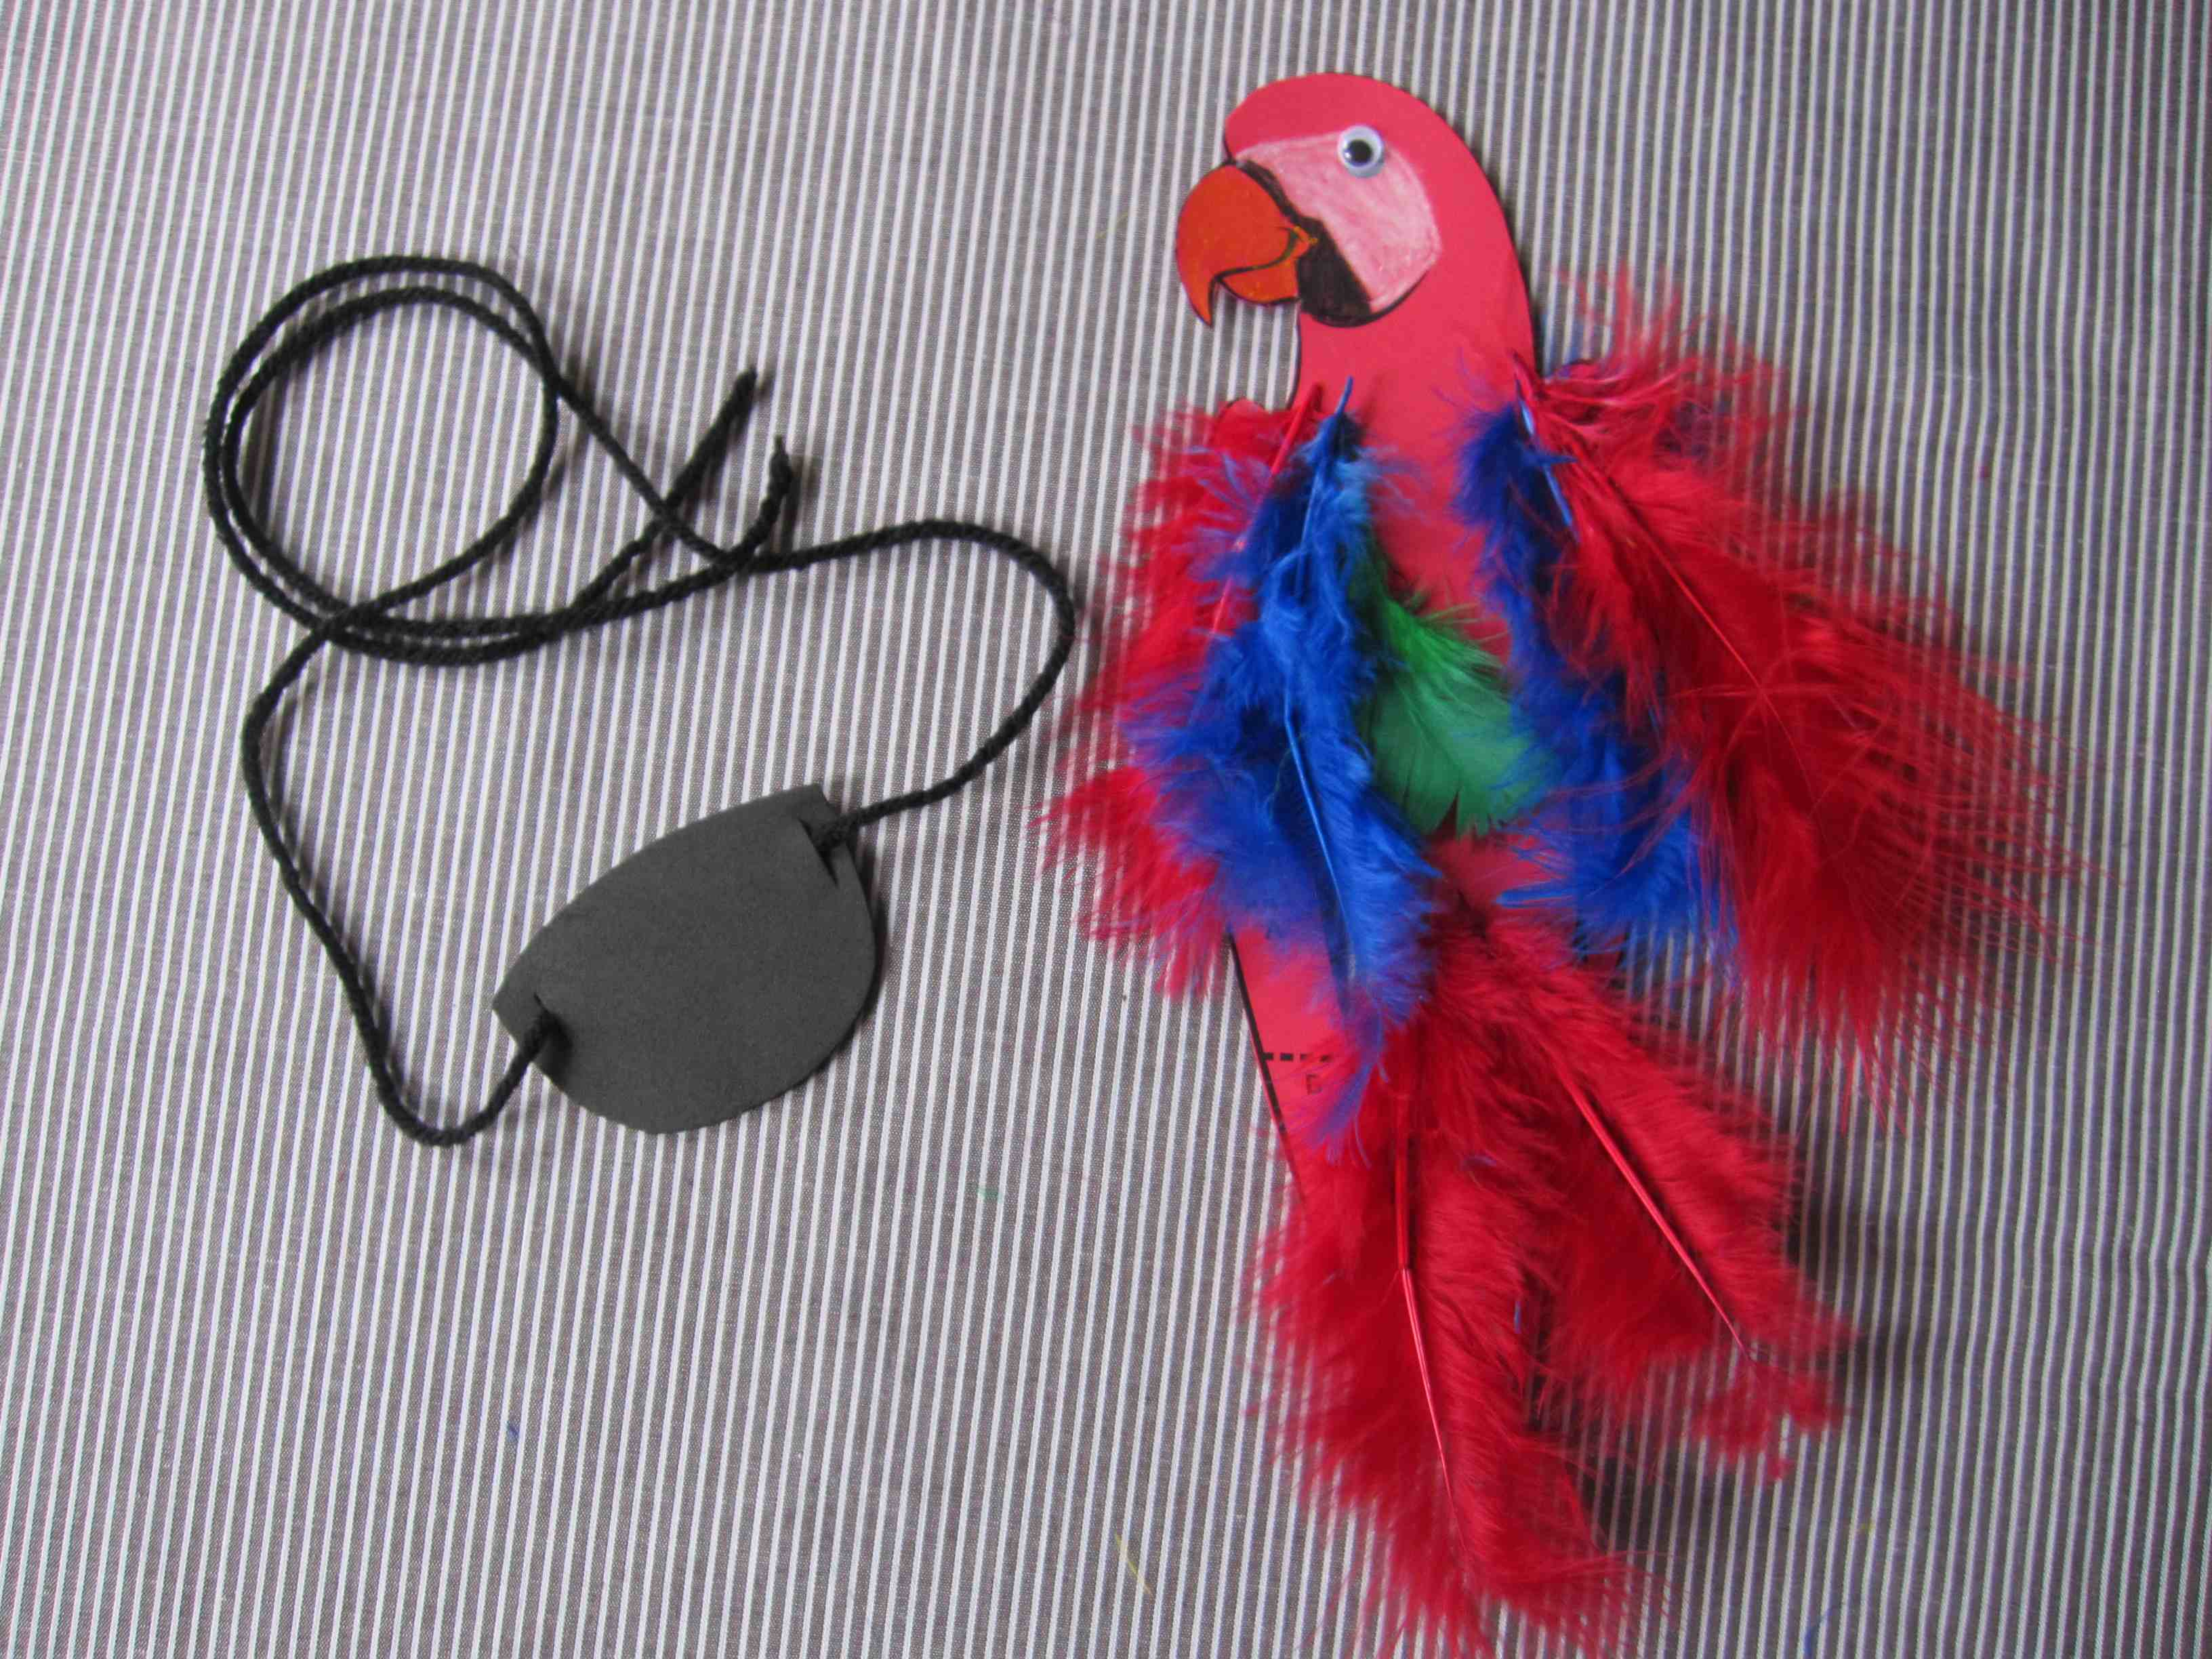 Pirate crafts for toddlers - Pirate Craft Eye Patches And Parrots Arrr